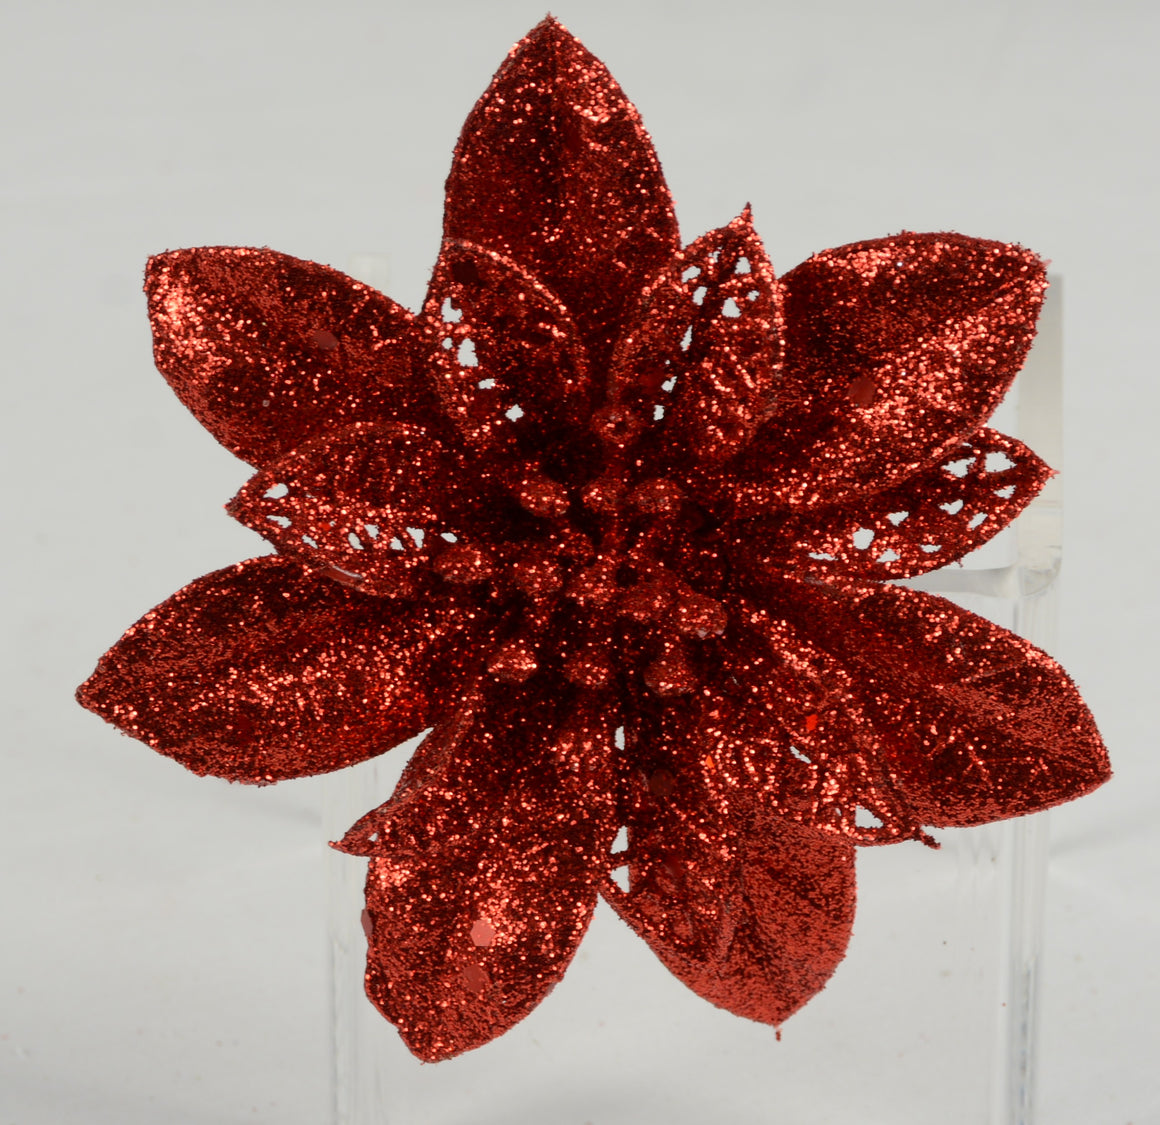 Set of 4 Poinsettia Blooms on Clips, Red Glittered, 4 Inches Diameter - Christmas Ornament Flowers